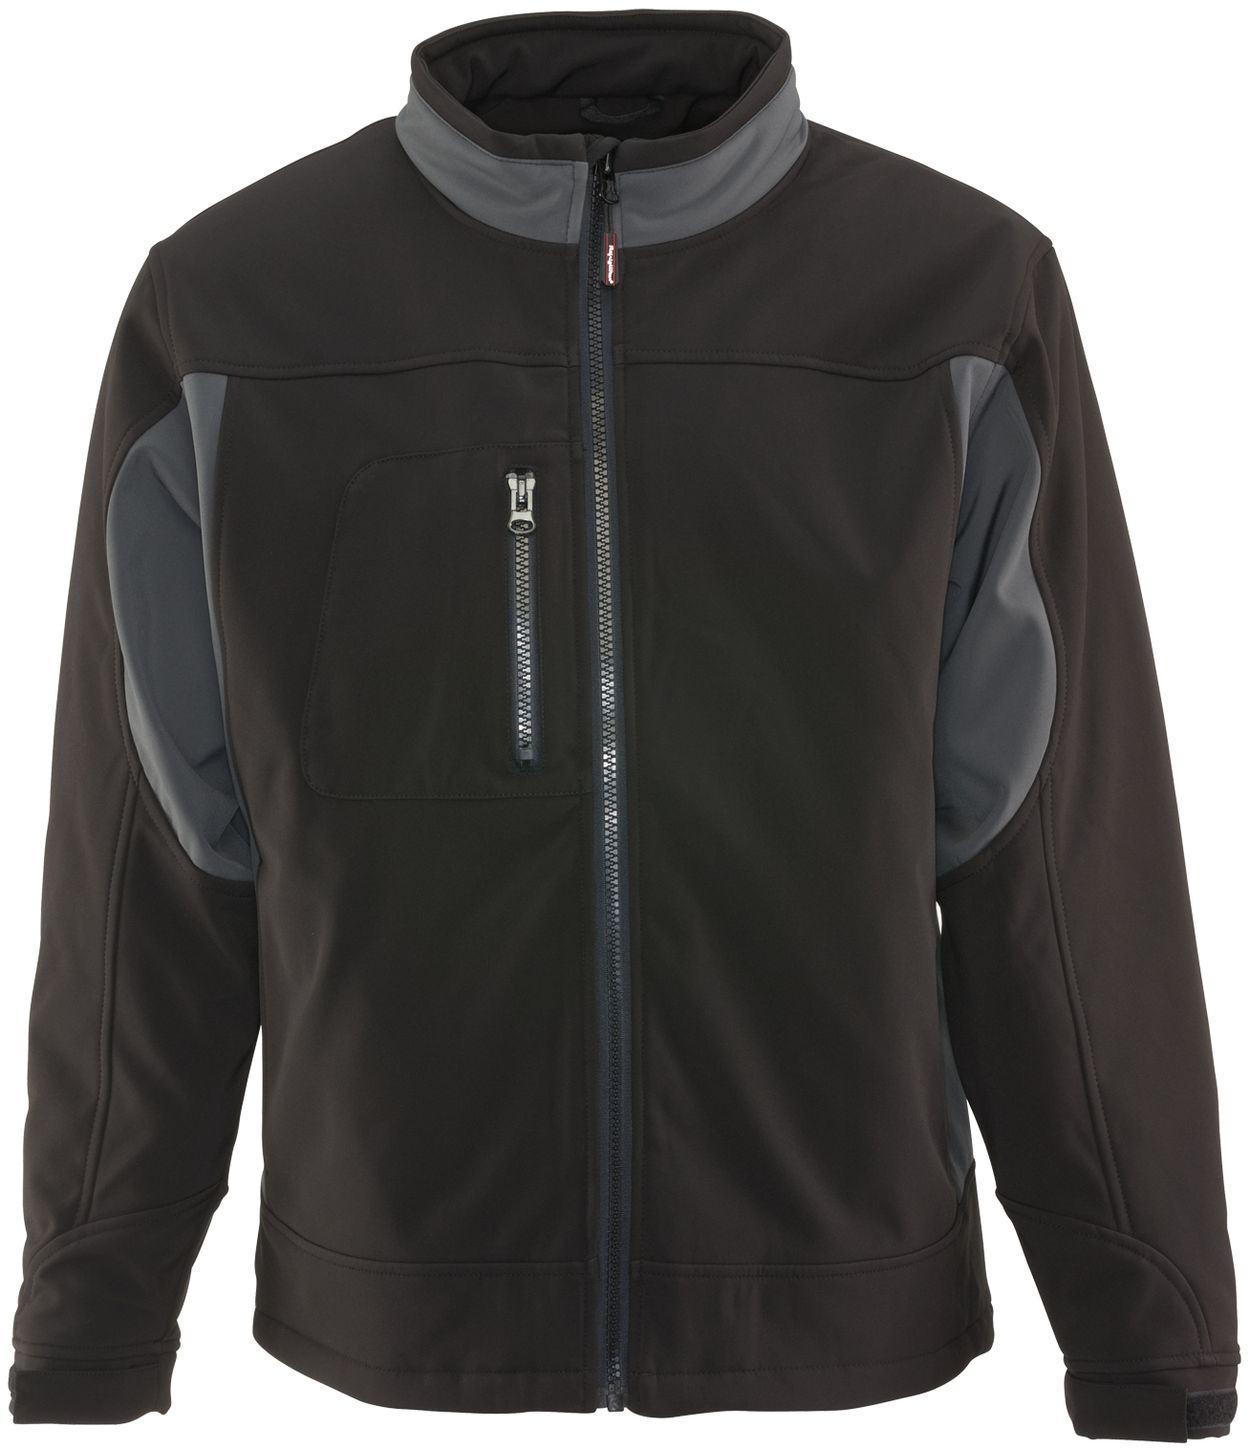 RefrigiWear 0490 Softshell Insulated Work Jacket Black Front